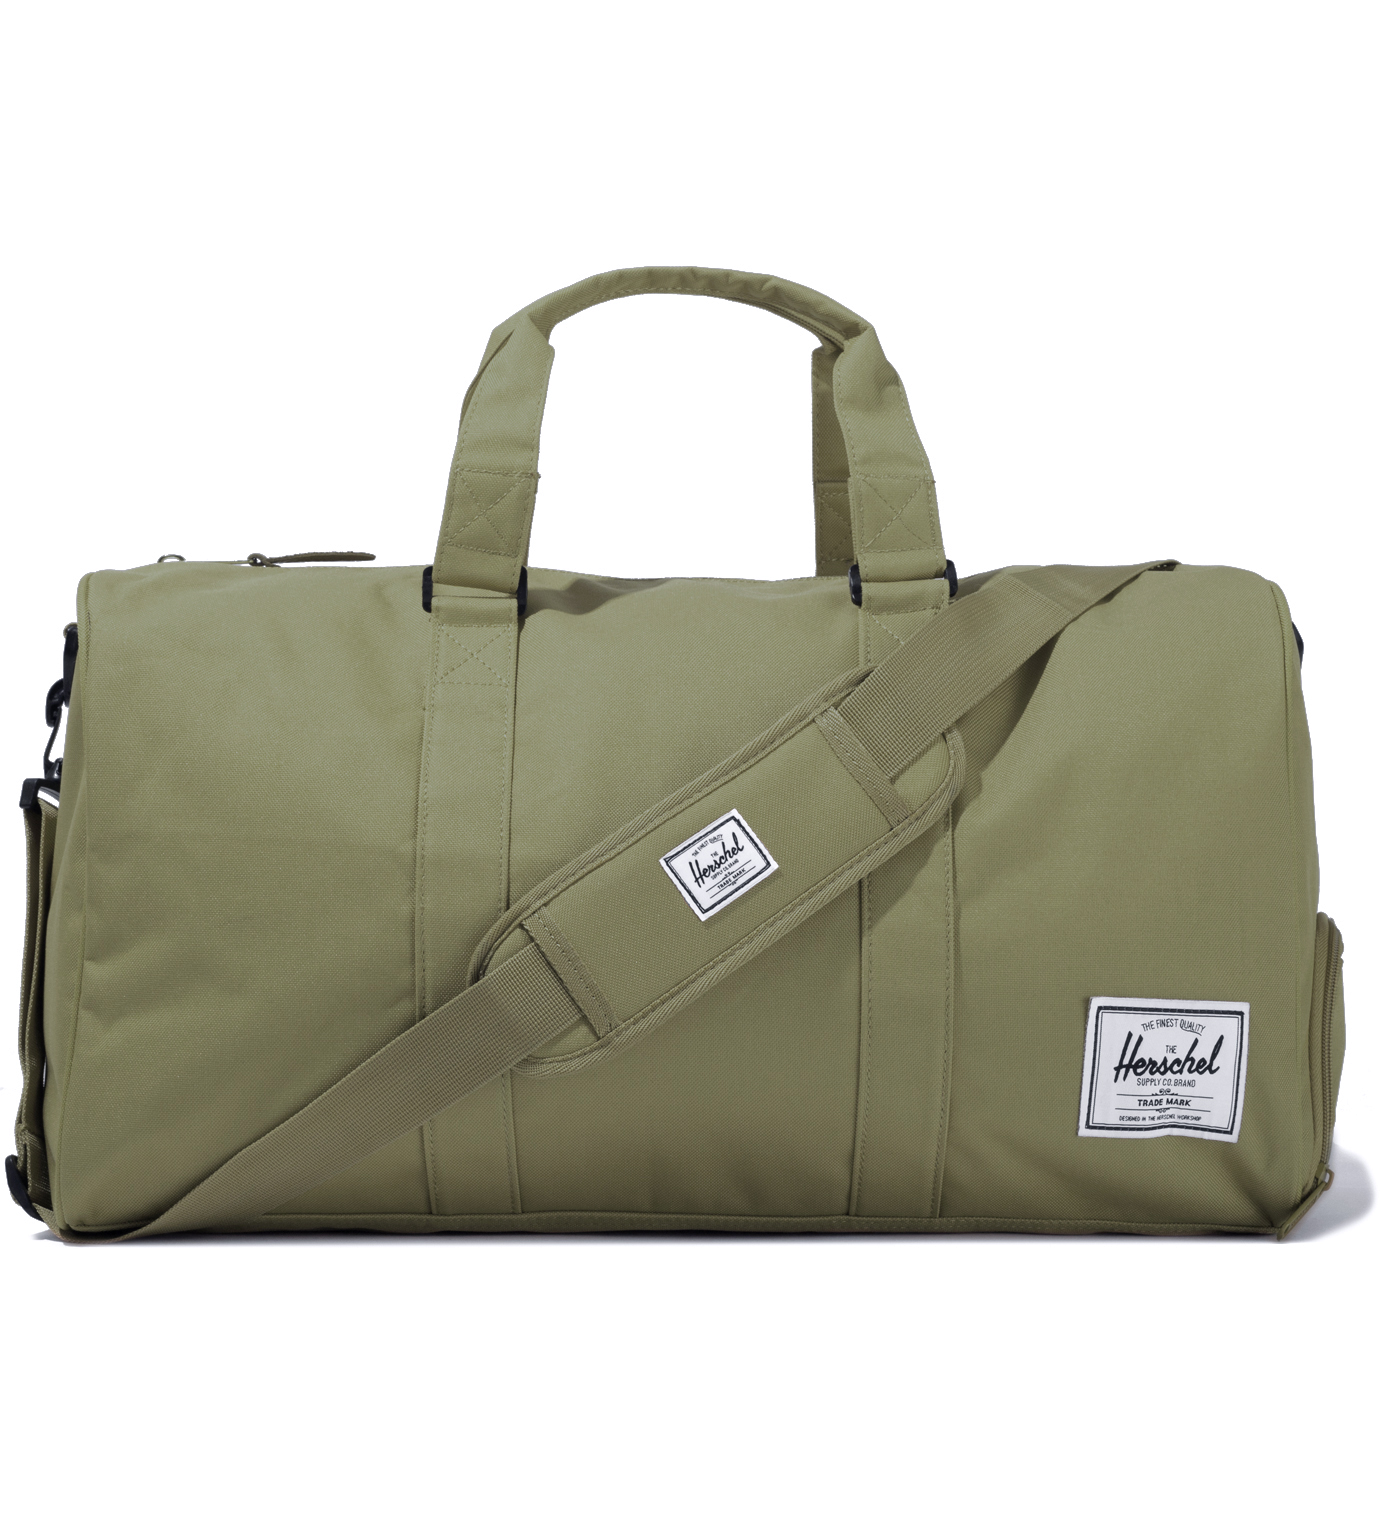 Herschel Supply Co. Olive Drab Novel Bag